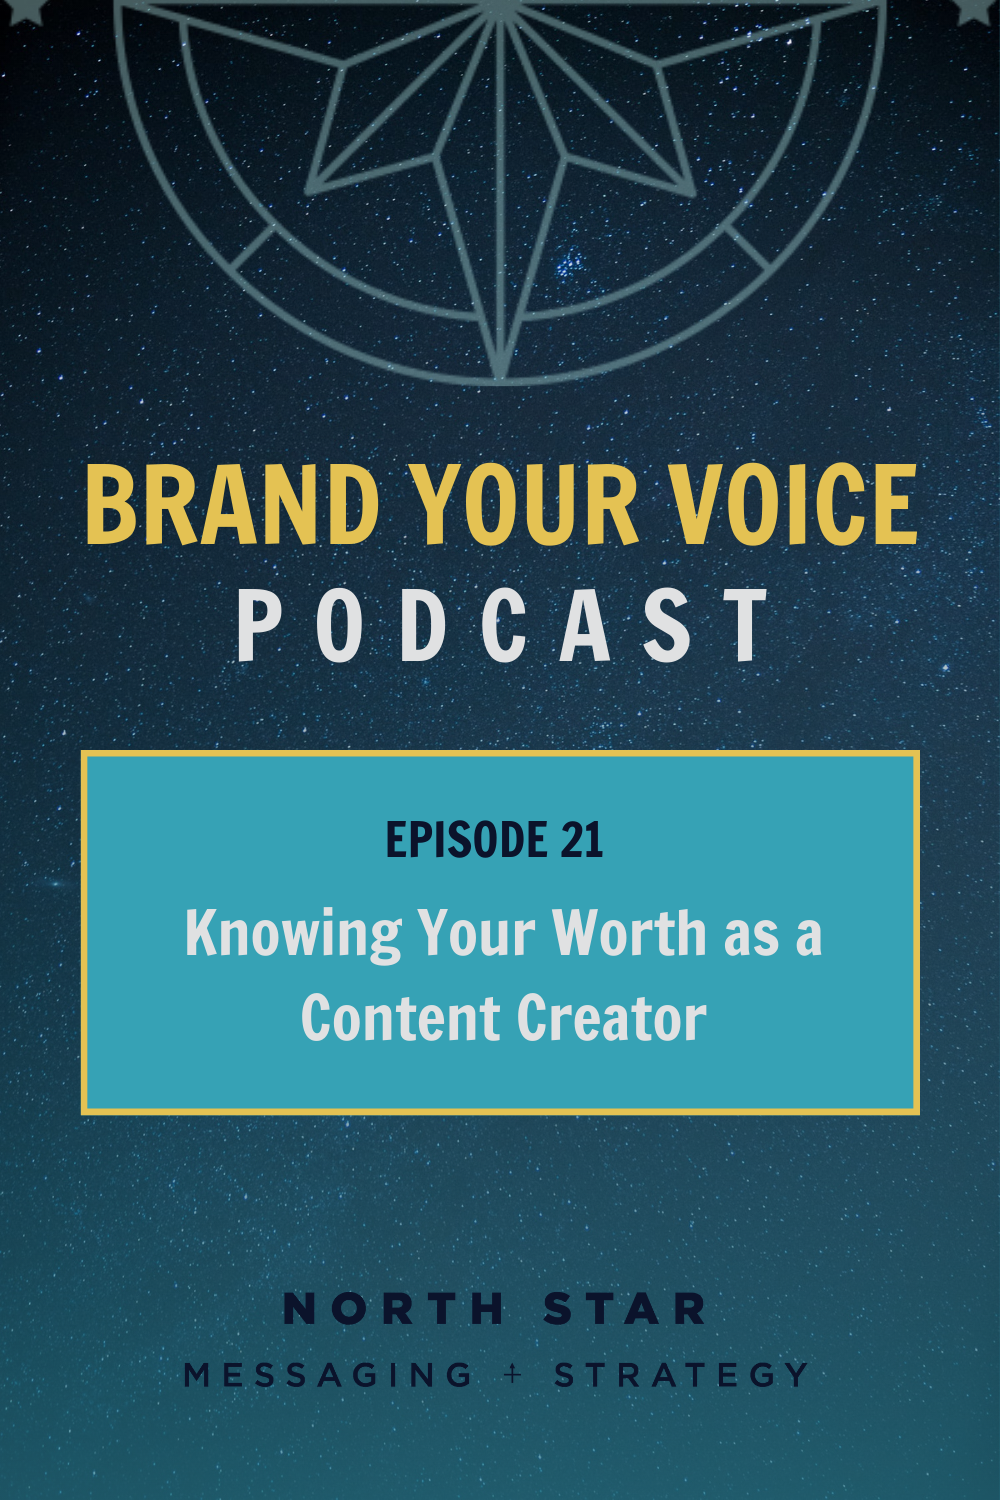 EPISODE 21: Knowing Your Worth as a Content Creator